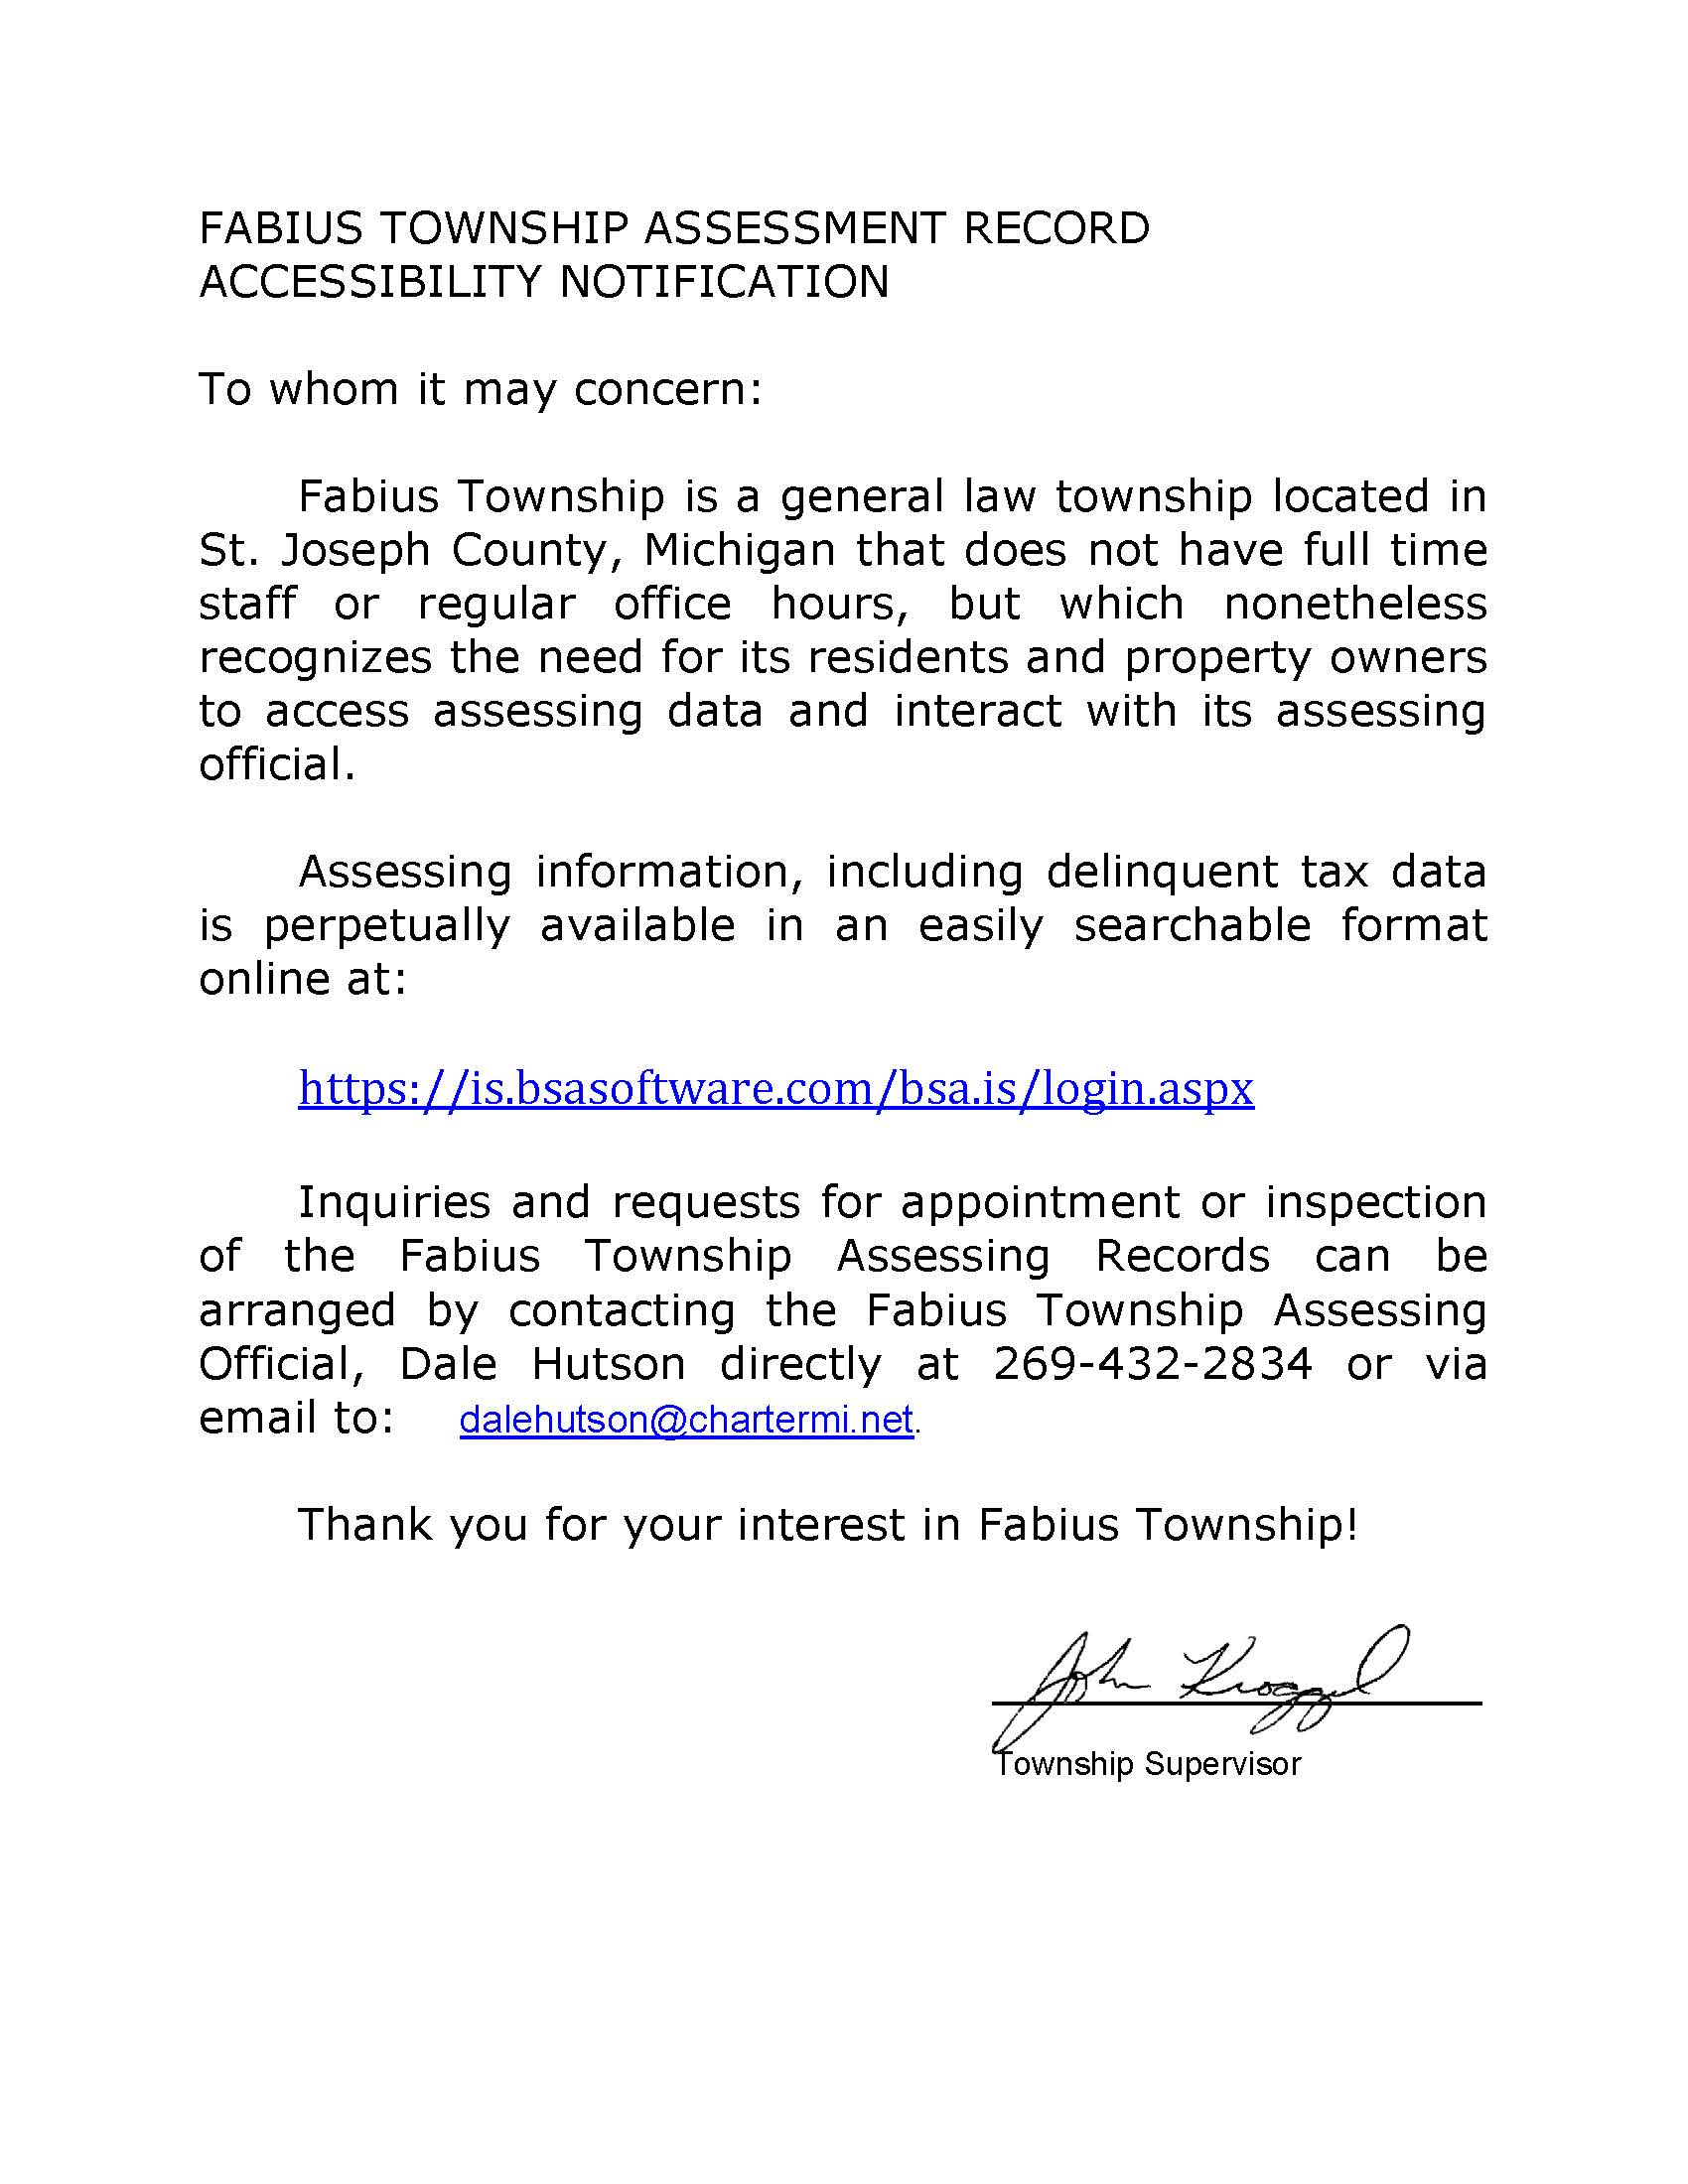 TOWNSHIP ASSESSMENT RECORD ACCESSIBILITY NOTIFICATION